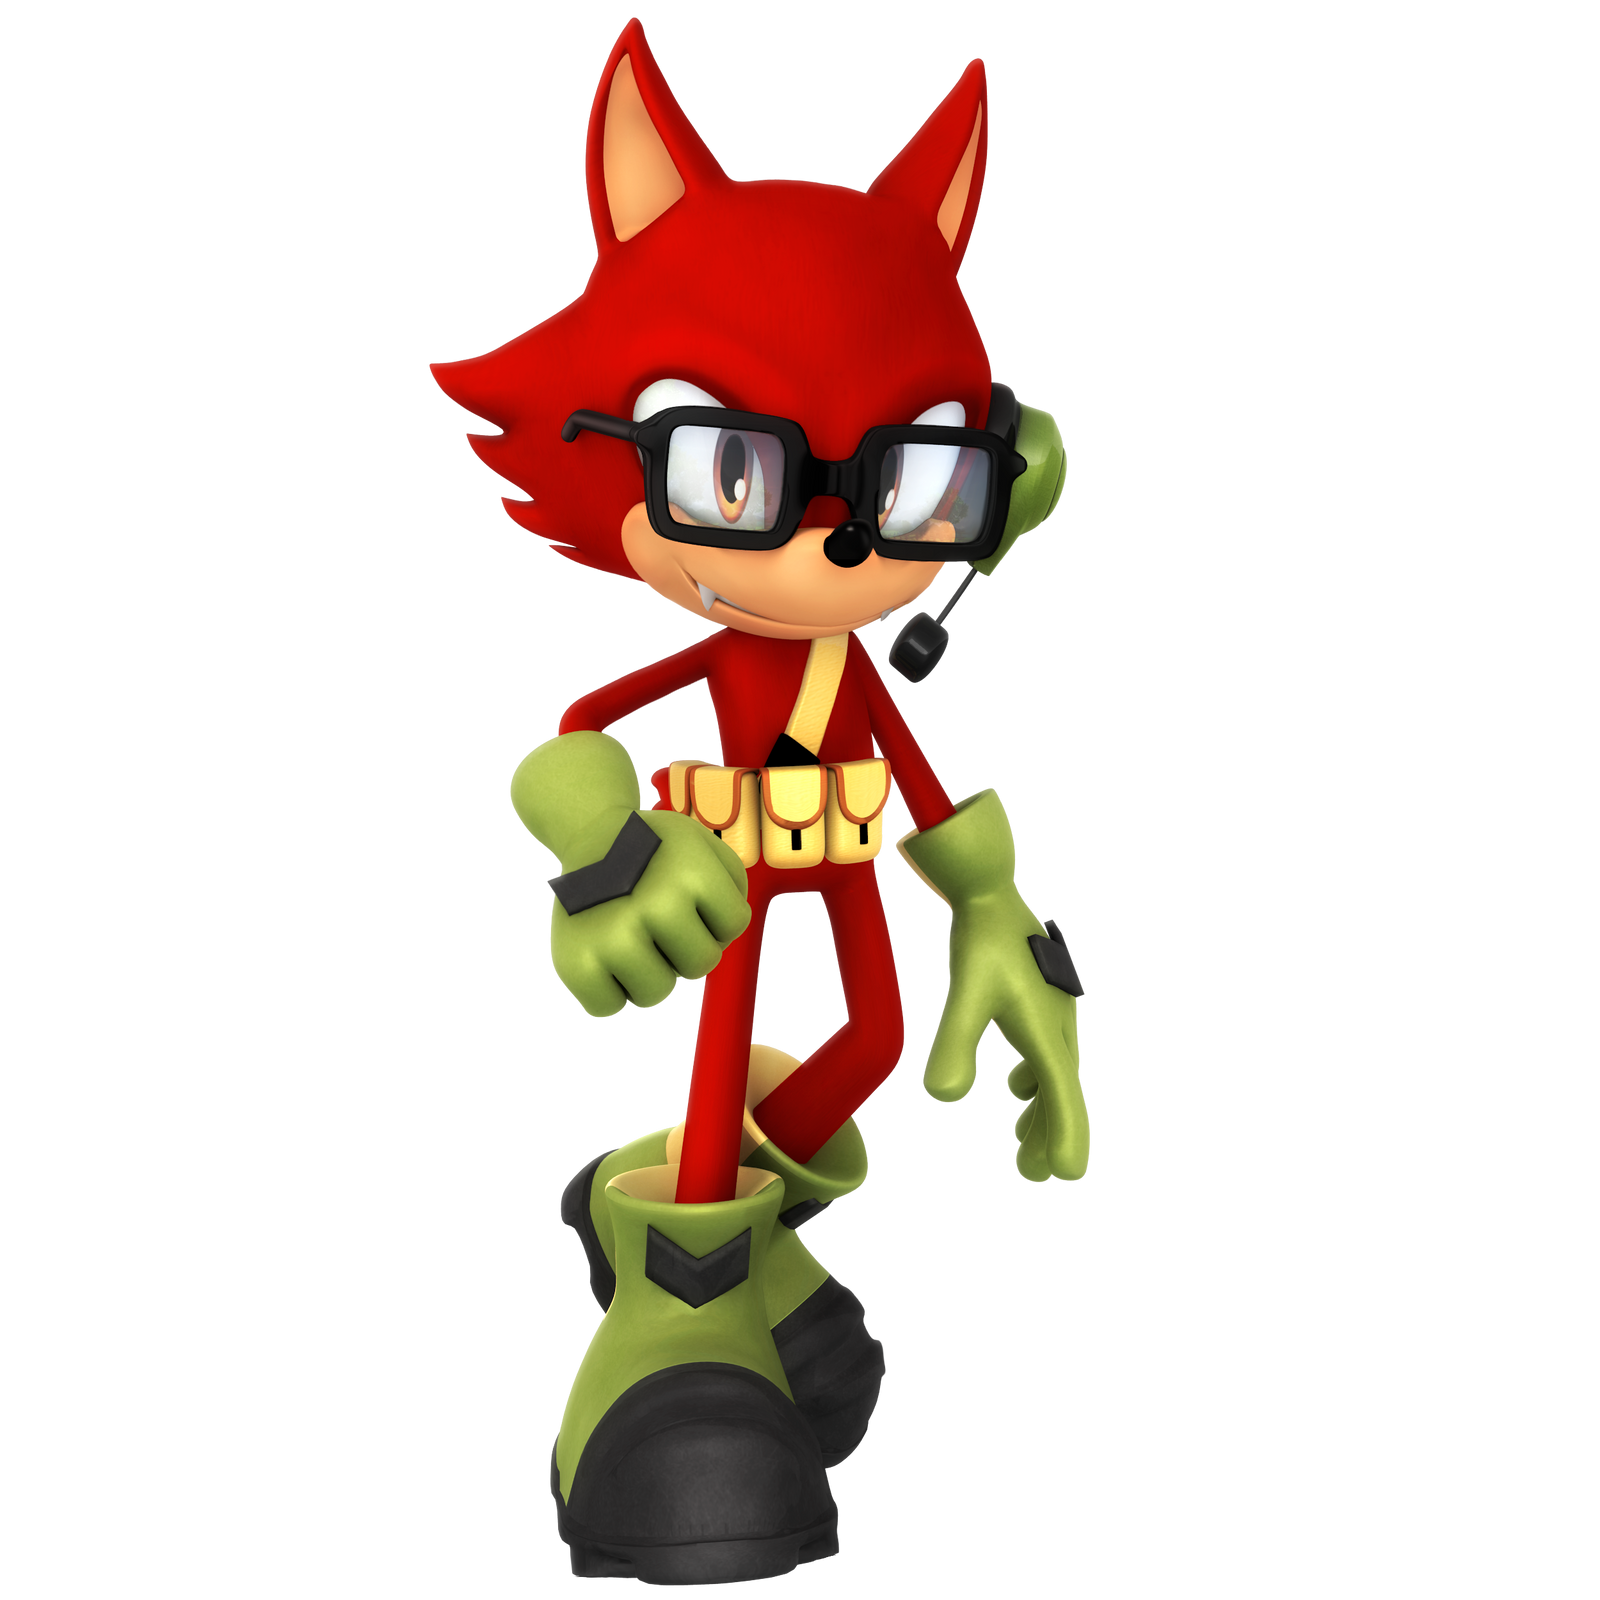 [Image: custom_hero_render_by_nibroc_rock-db9n9zj.png]